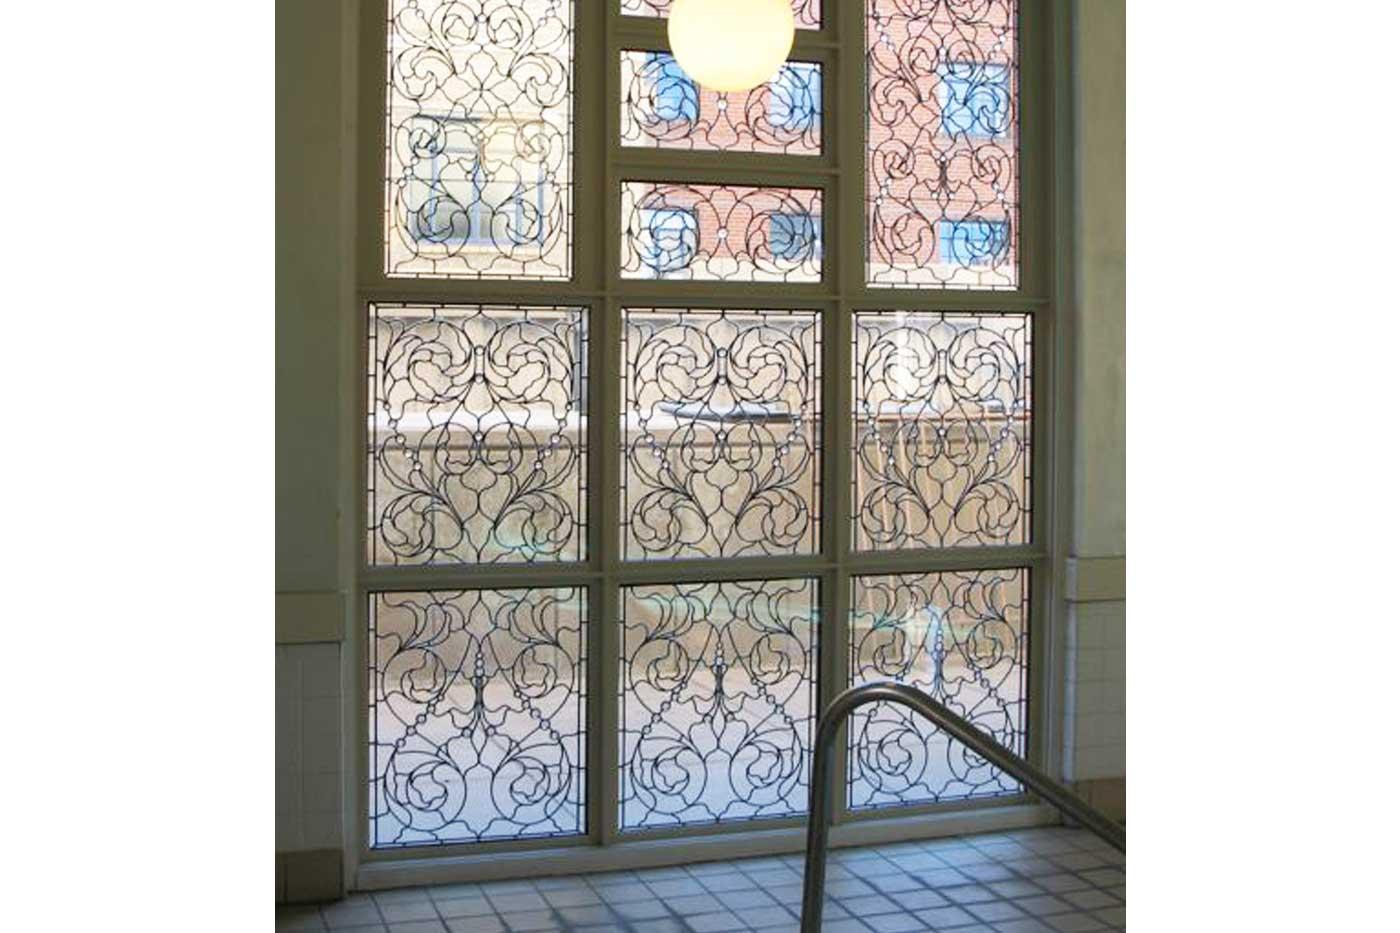 Without the use of color, Wolff is able to add intrigue and dimension to a window through her intricate designs.